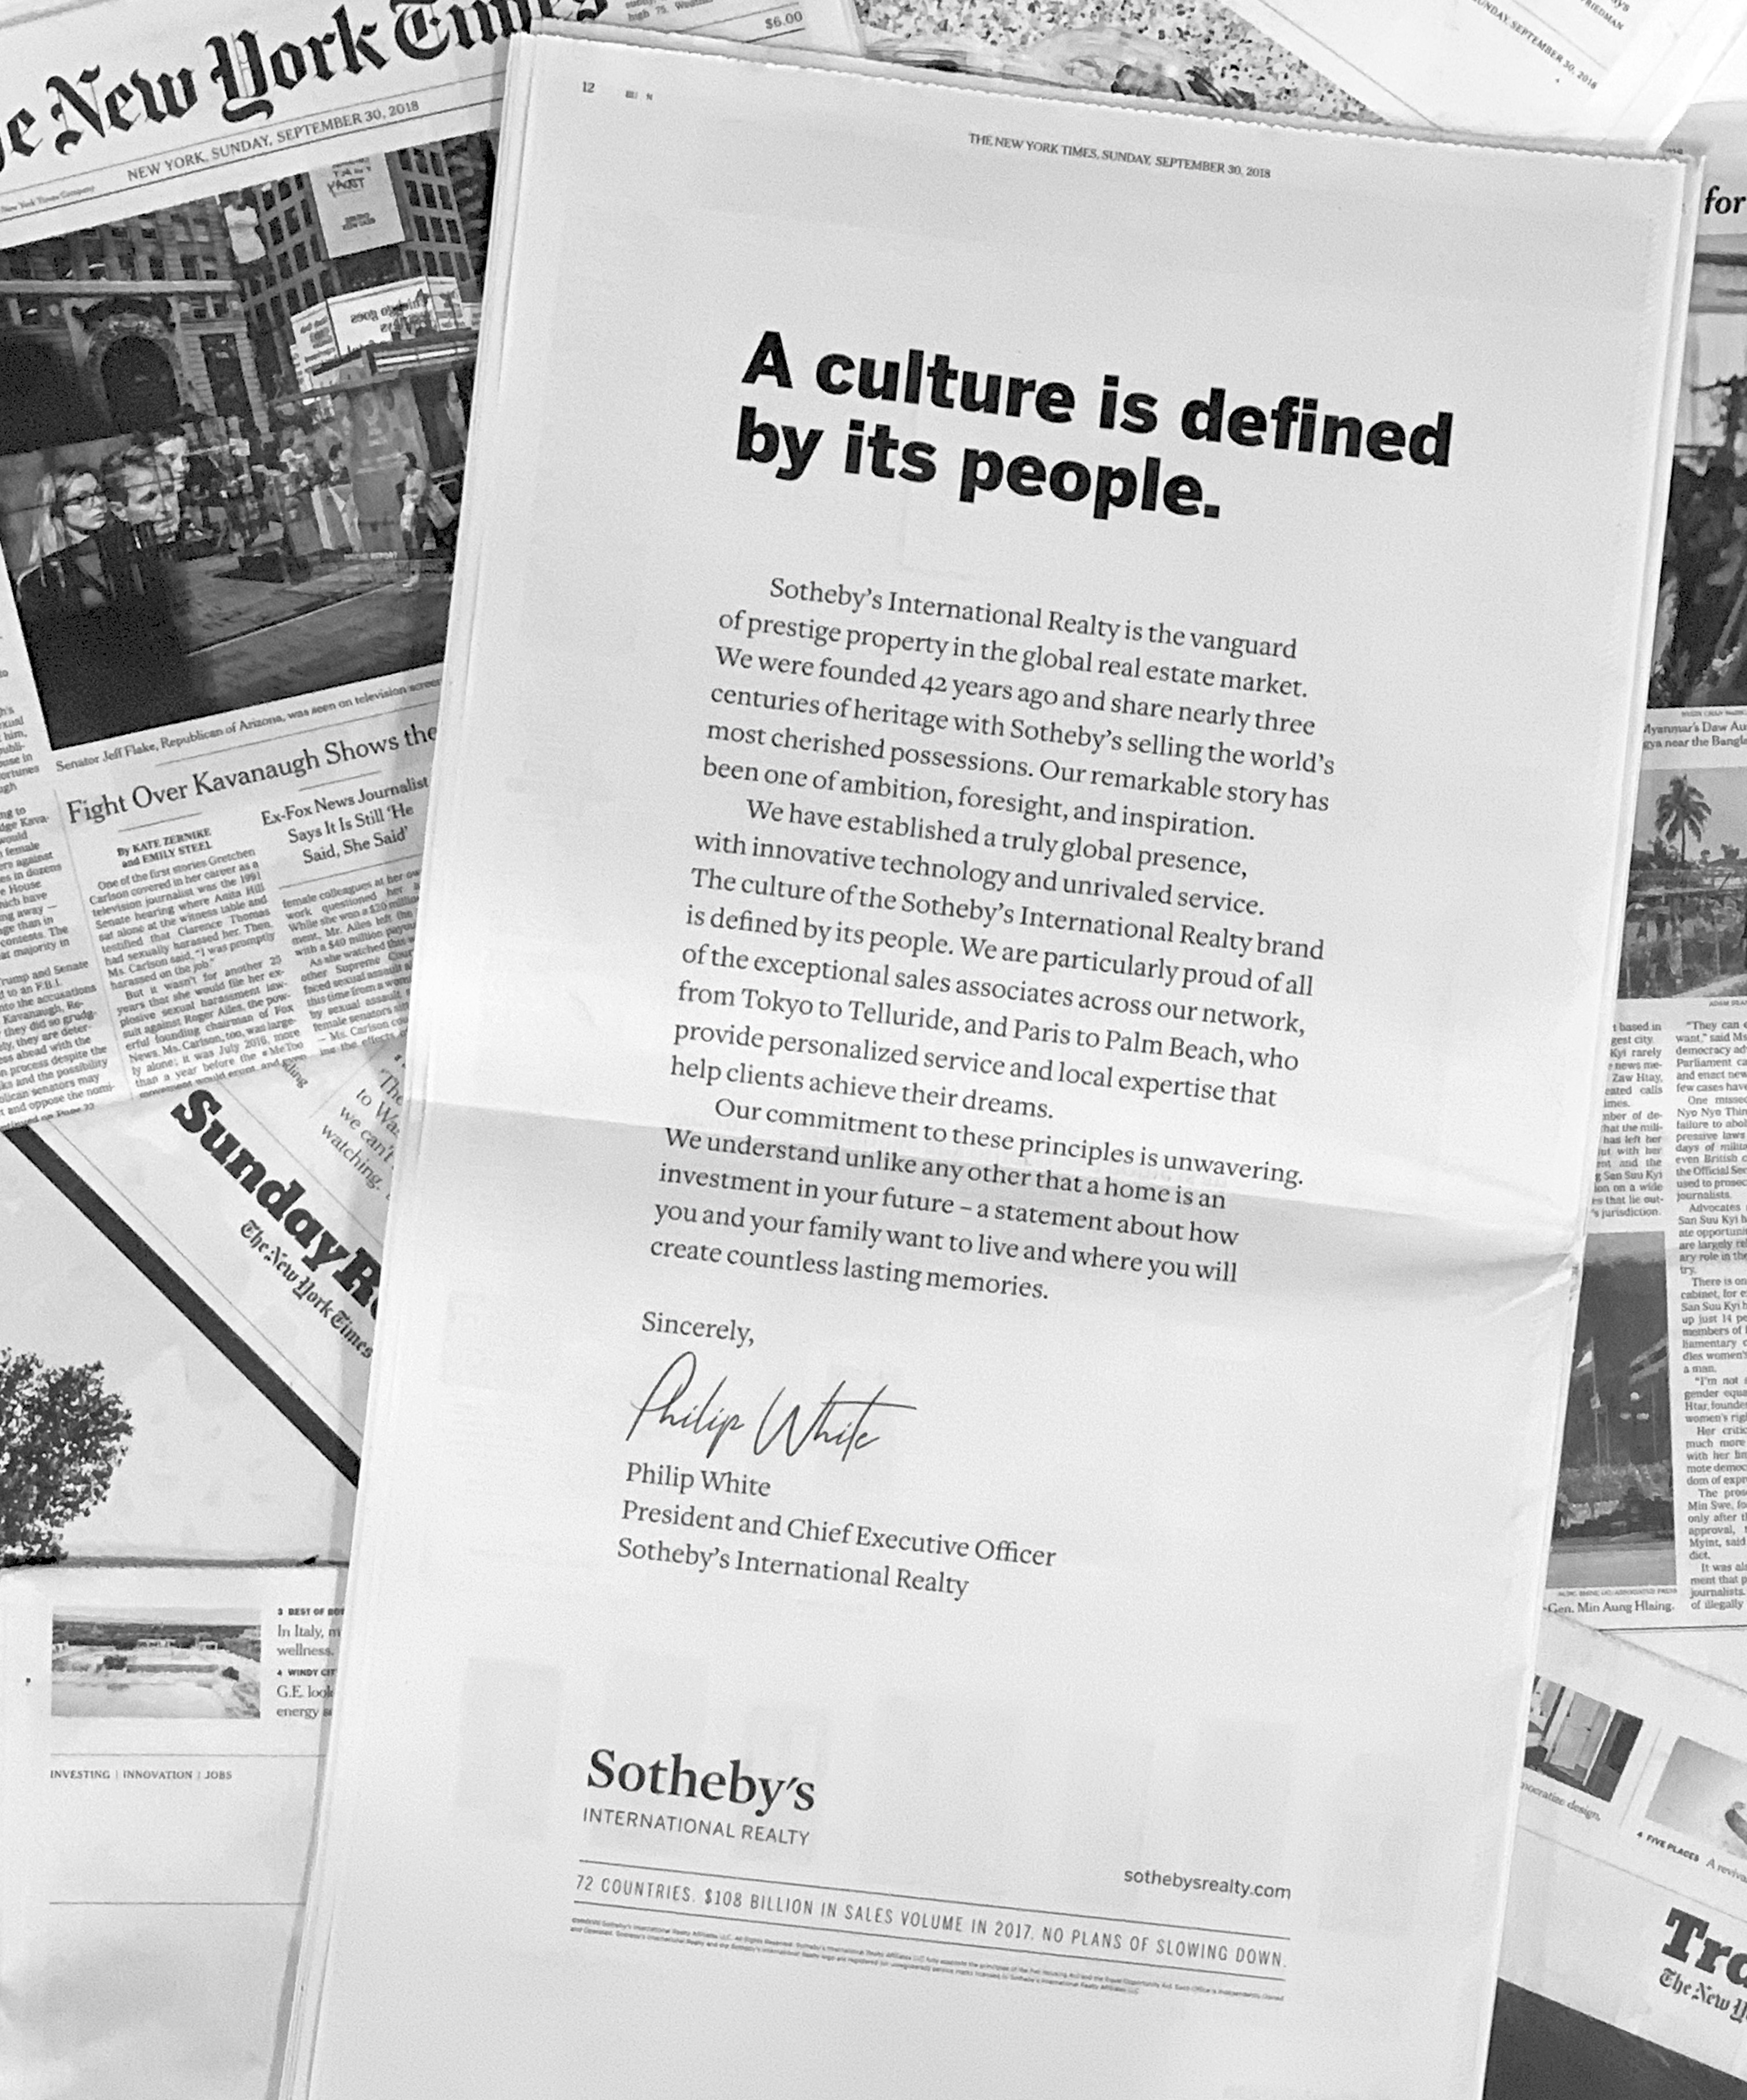 Letter from Sotheby's International Realty President & CEO